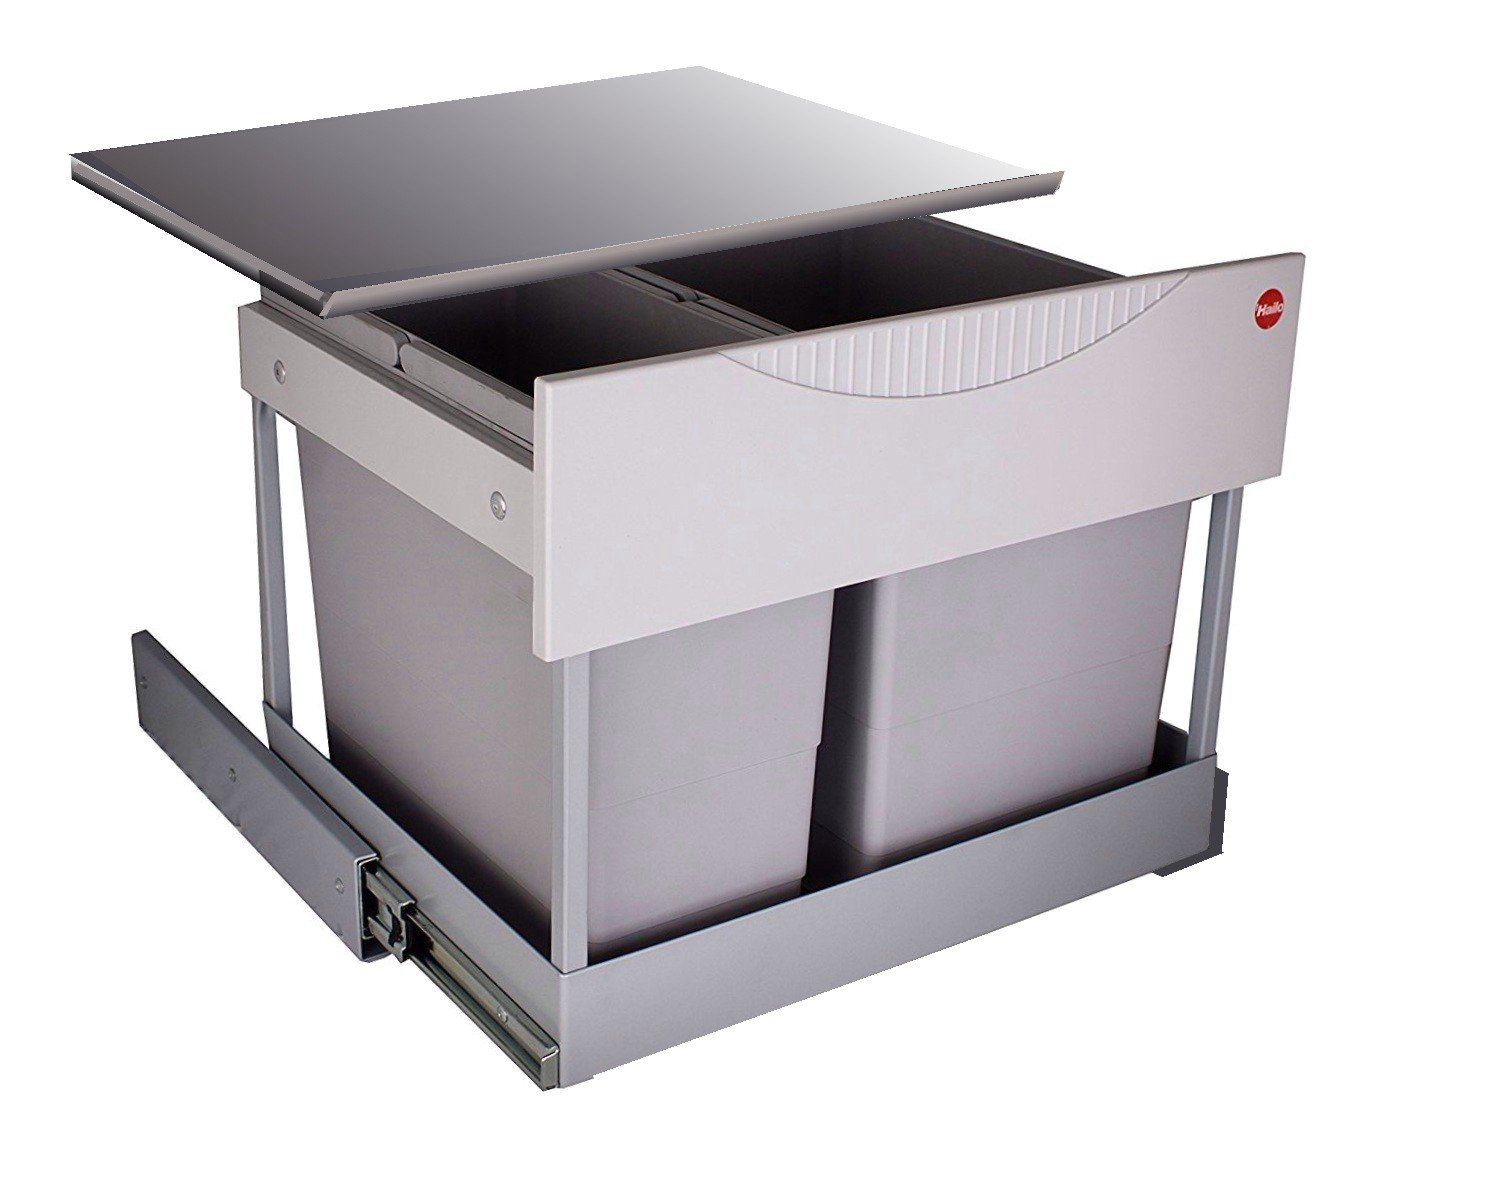 Hailo 3644801 Waste Bin, TR Swing, 60.2/30M, for Cabinets that are 600 mm wide with Hinged Door